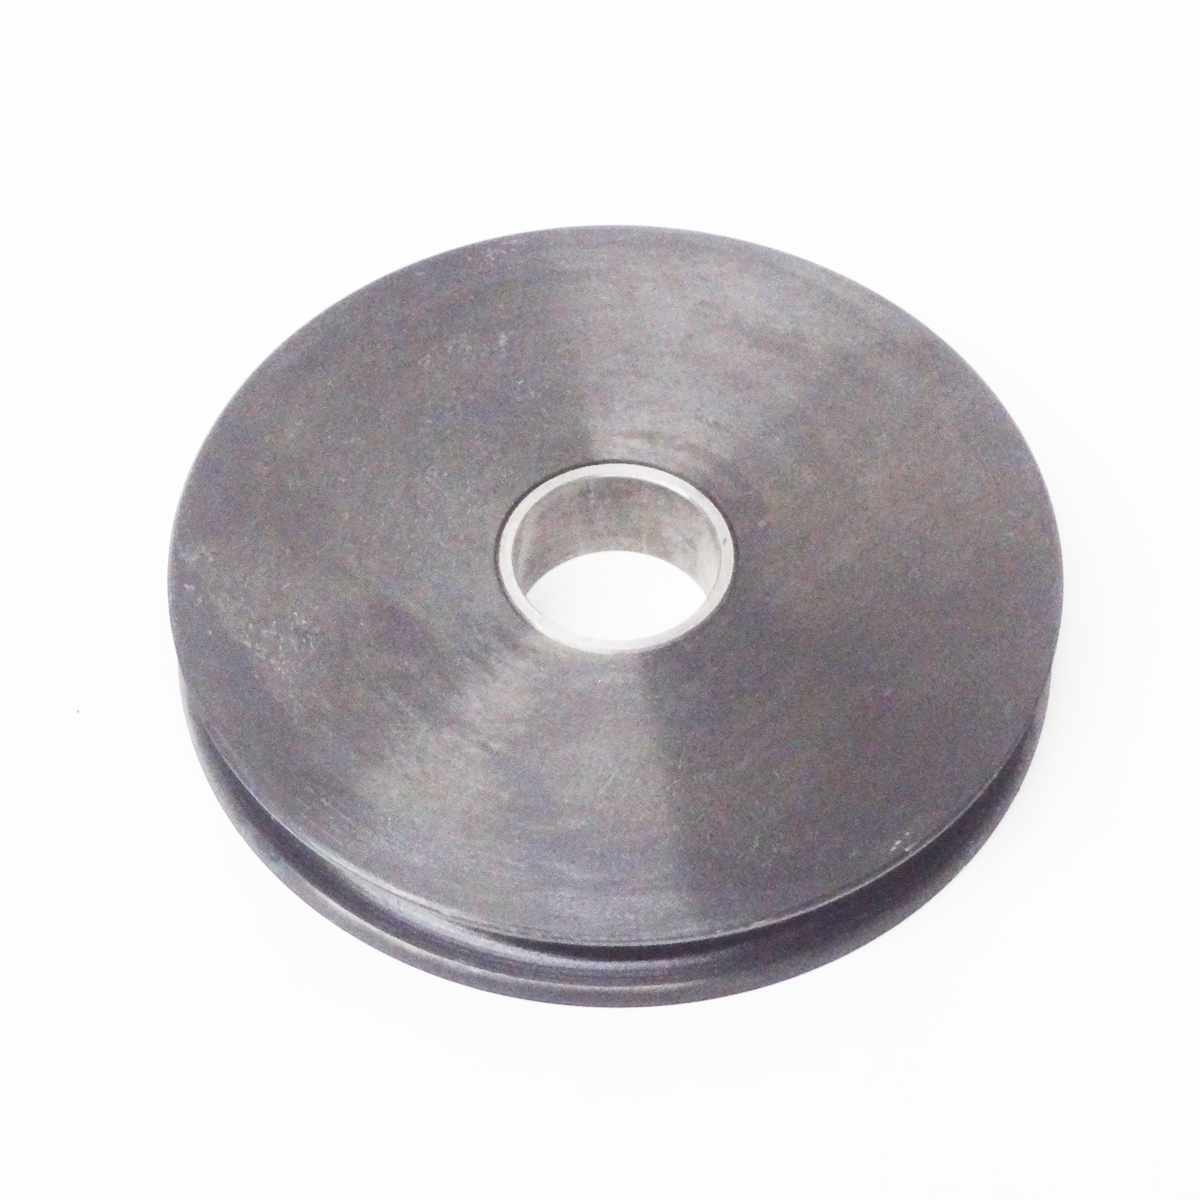 Forward Lift Upper Cable Pulley / Sheave 995020